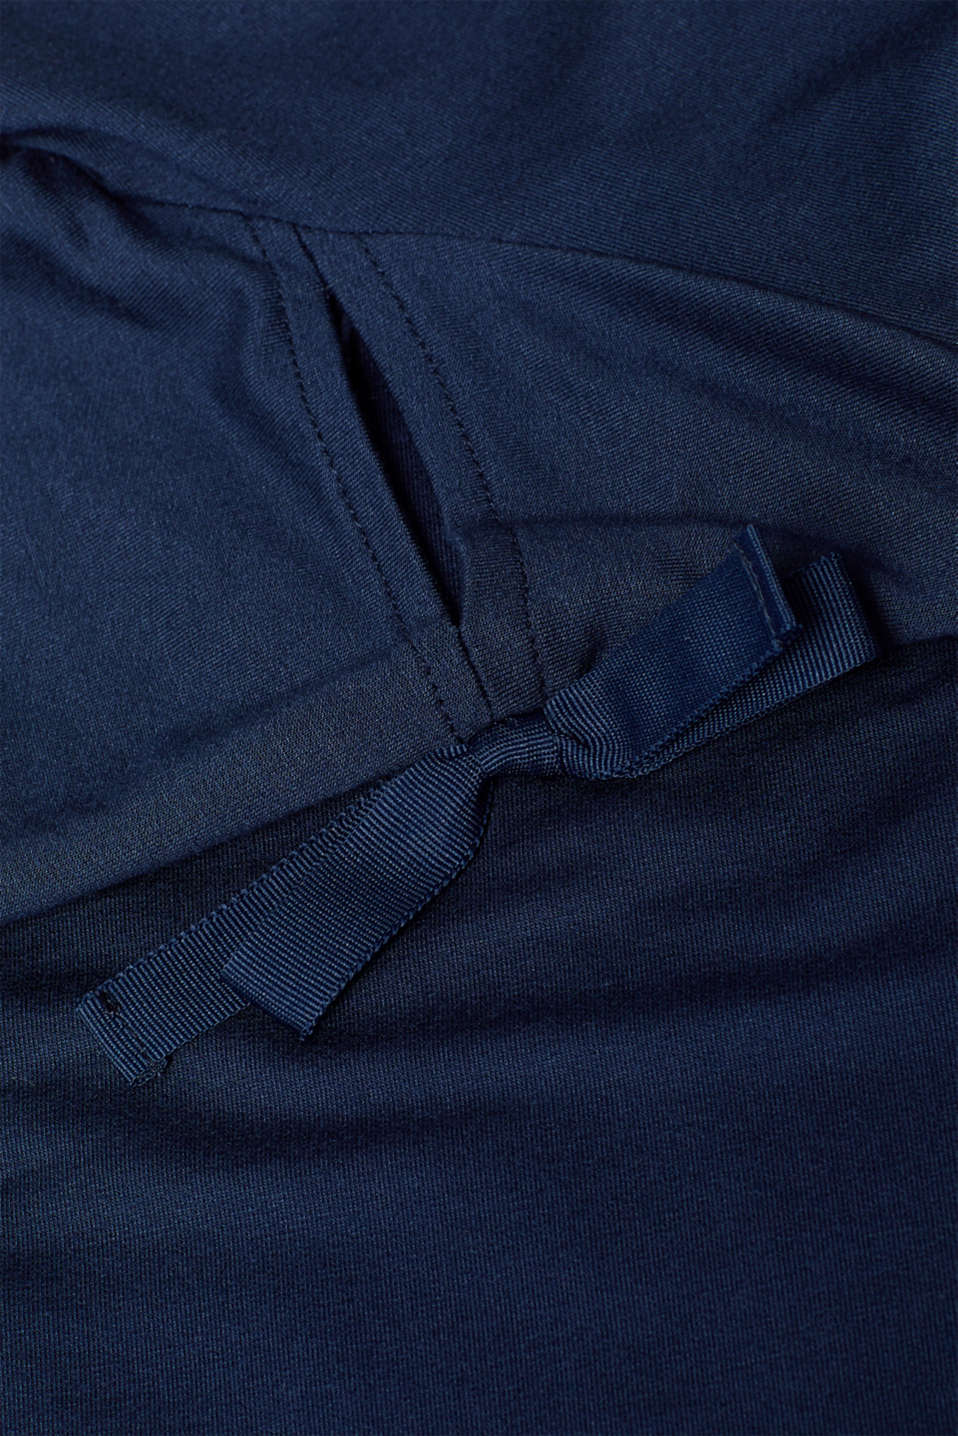 Jersey dress with knotted details, NAVY 2, detail image number 4